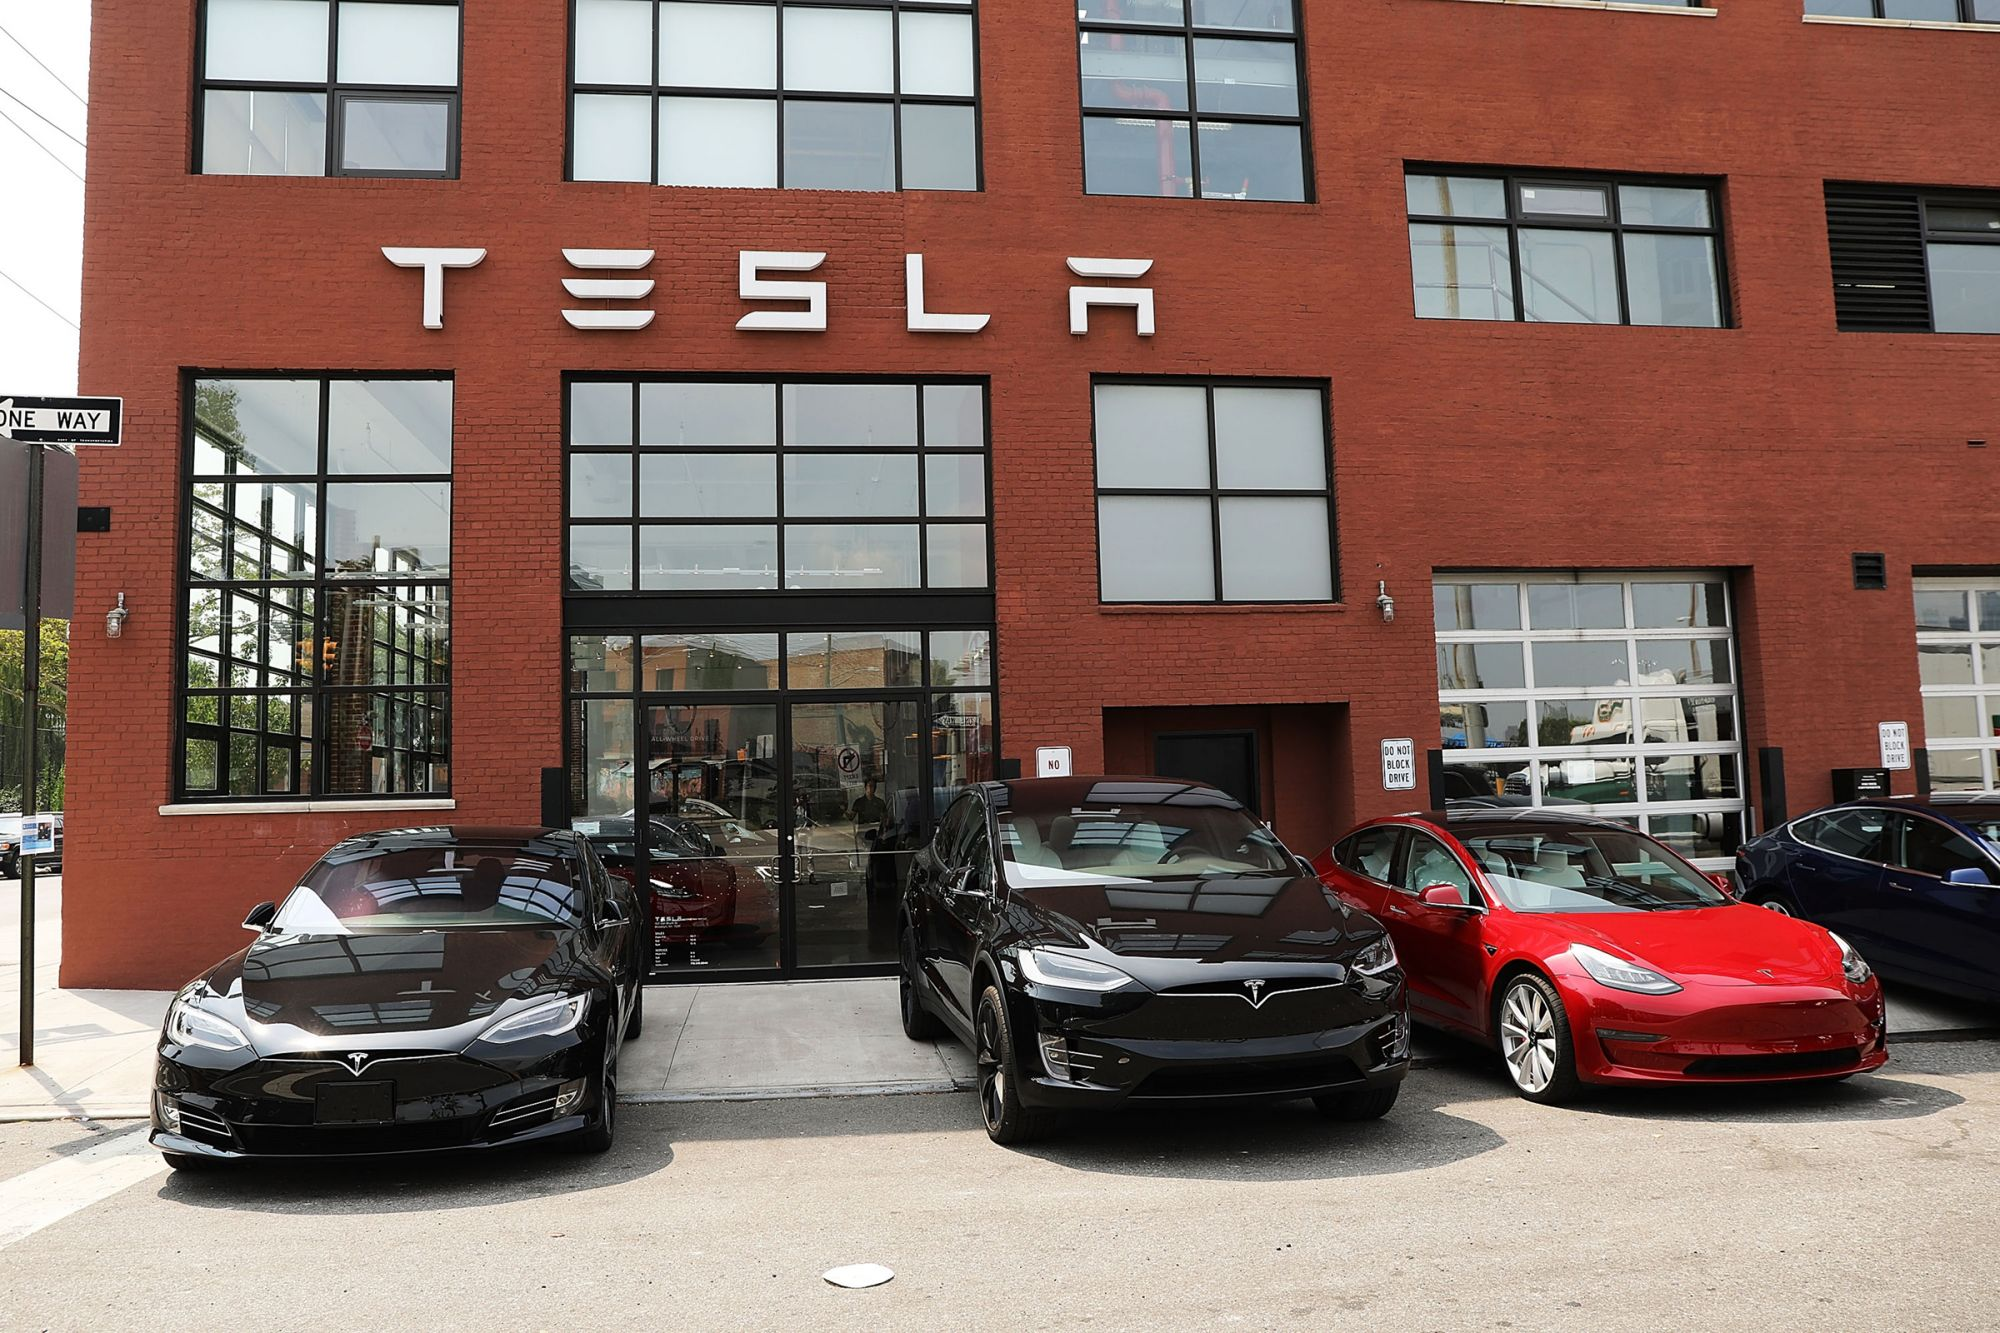 Do Recent Price Cuts by Tesla Suggest That Demand Is Softening for Its Vehicles?